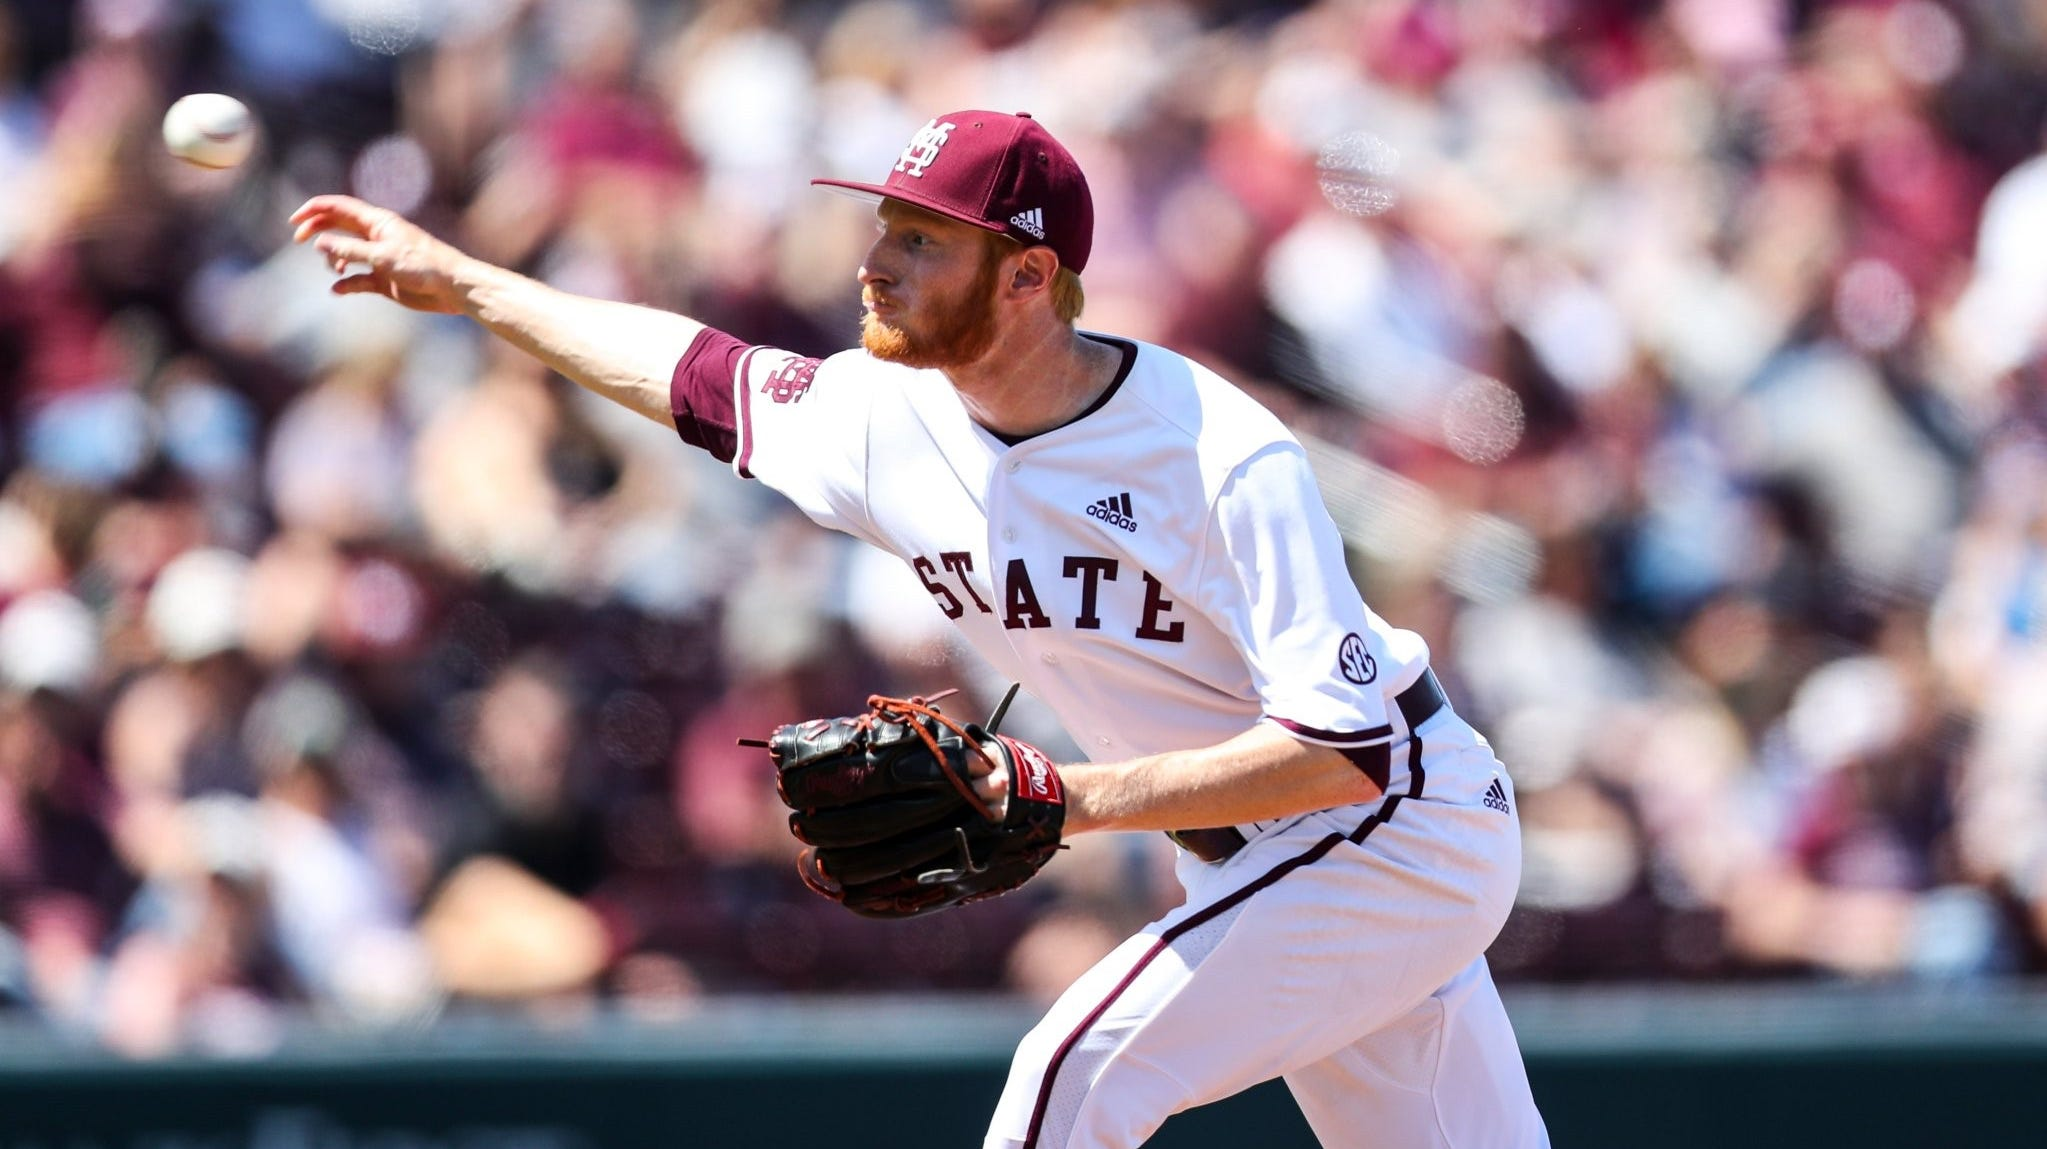 Mississippi State baseball squanders SEC West championship with loss to South Carolina